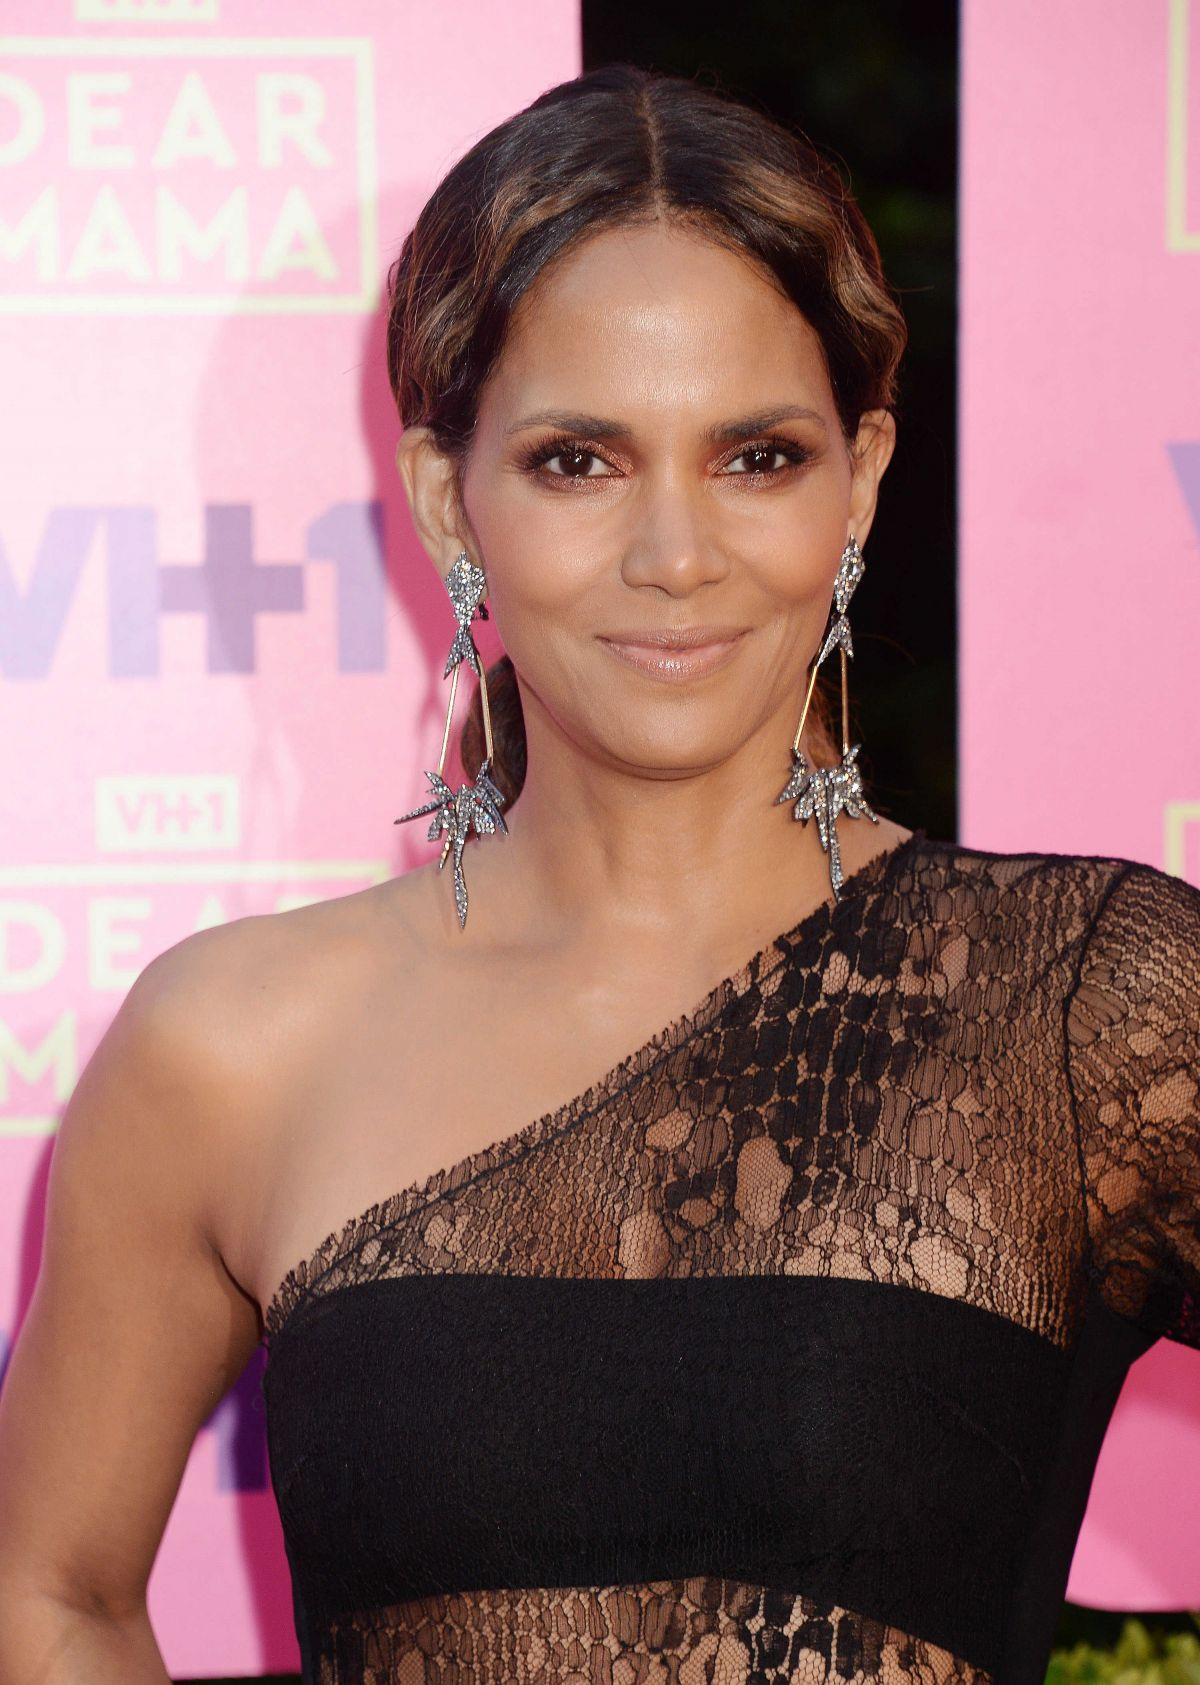 HALLE BERRY at VH1 Dear Mama Taping in Los Angeles 05/06 ... Halle Berry